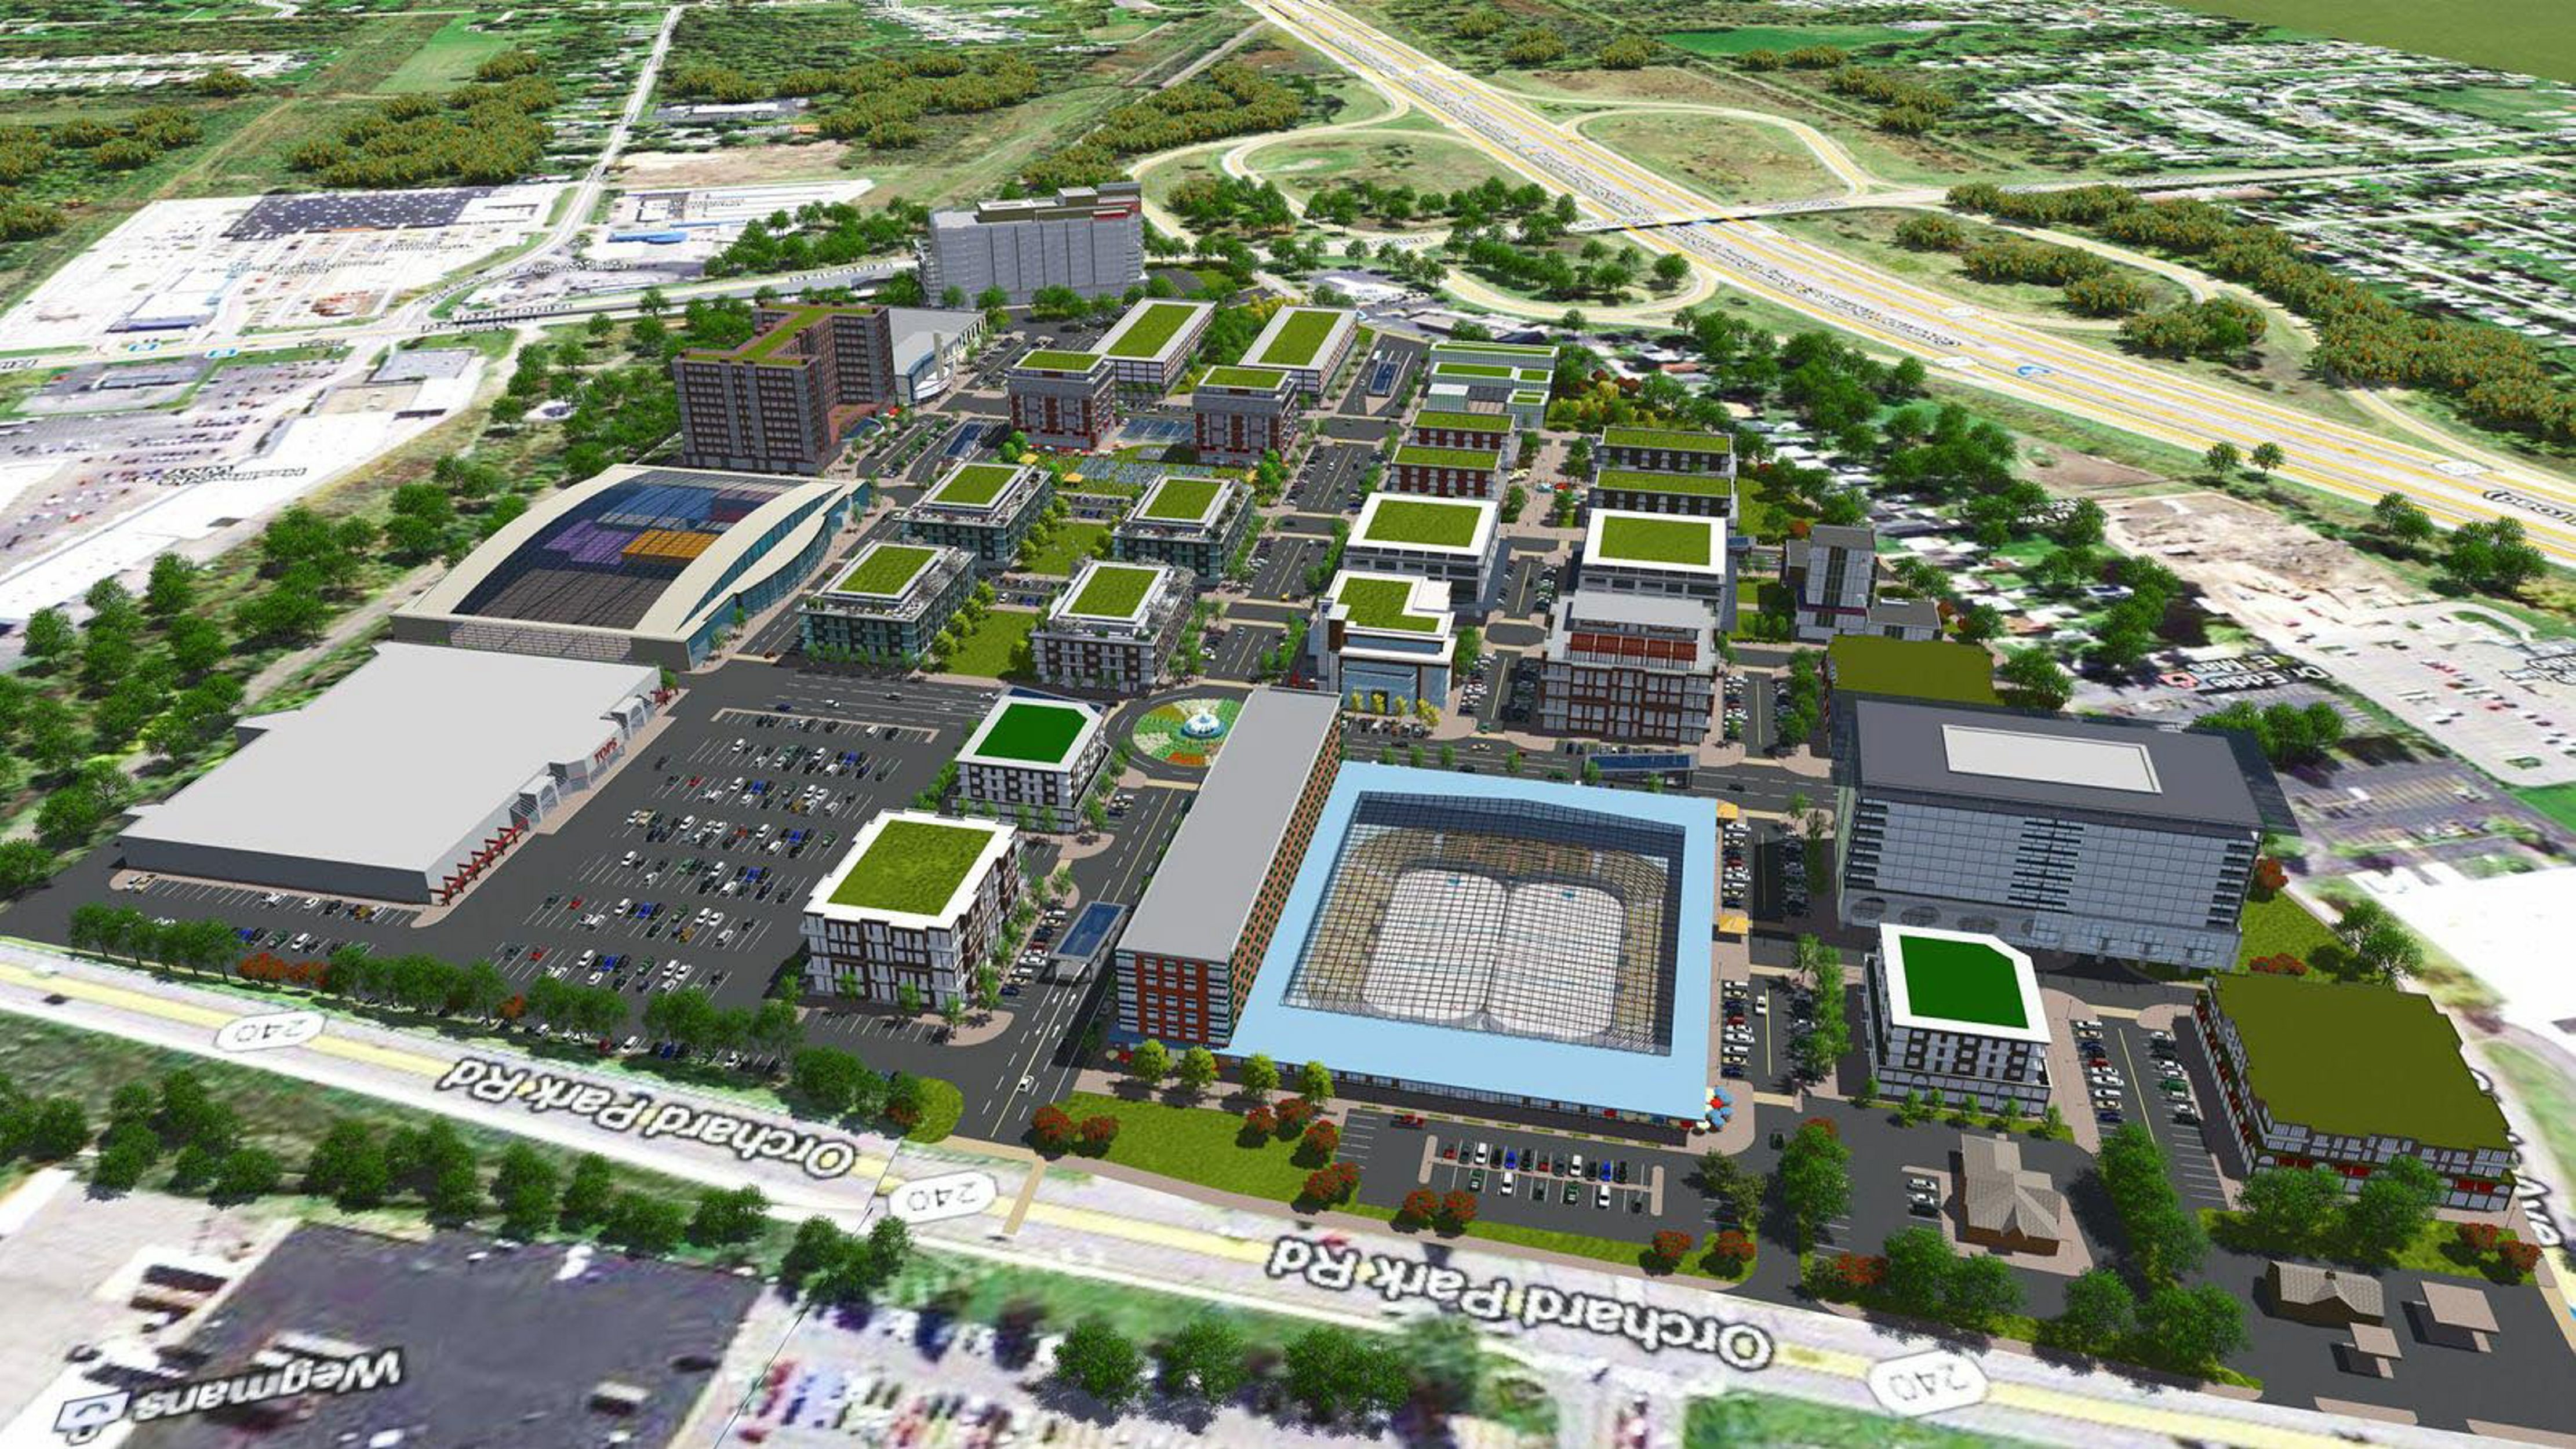 A major question is: Can West Seneca afford what might be the most ambitious private development in Western New York history?